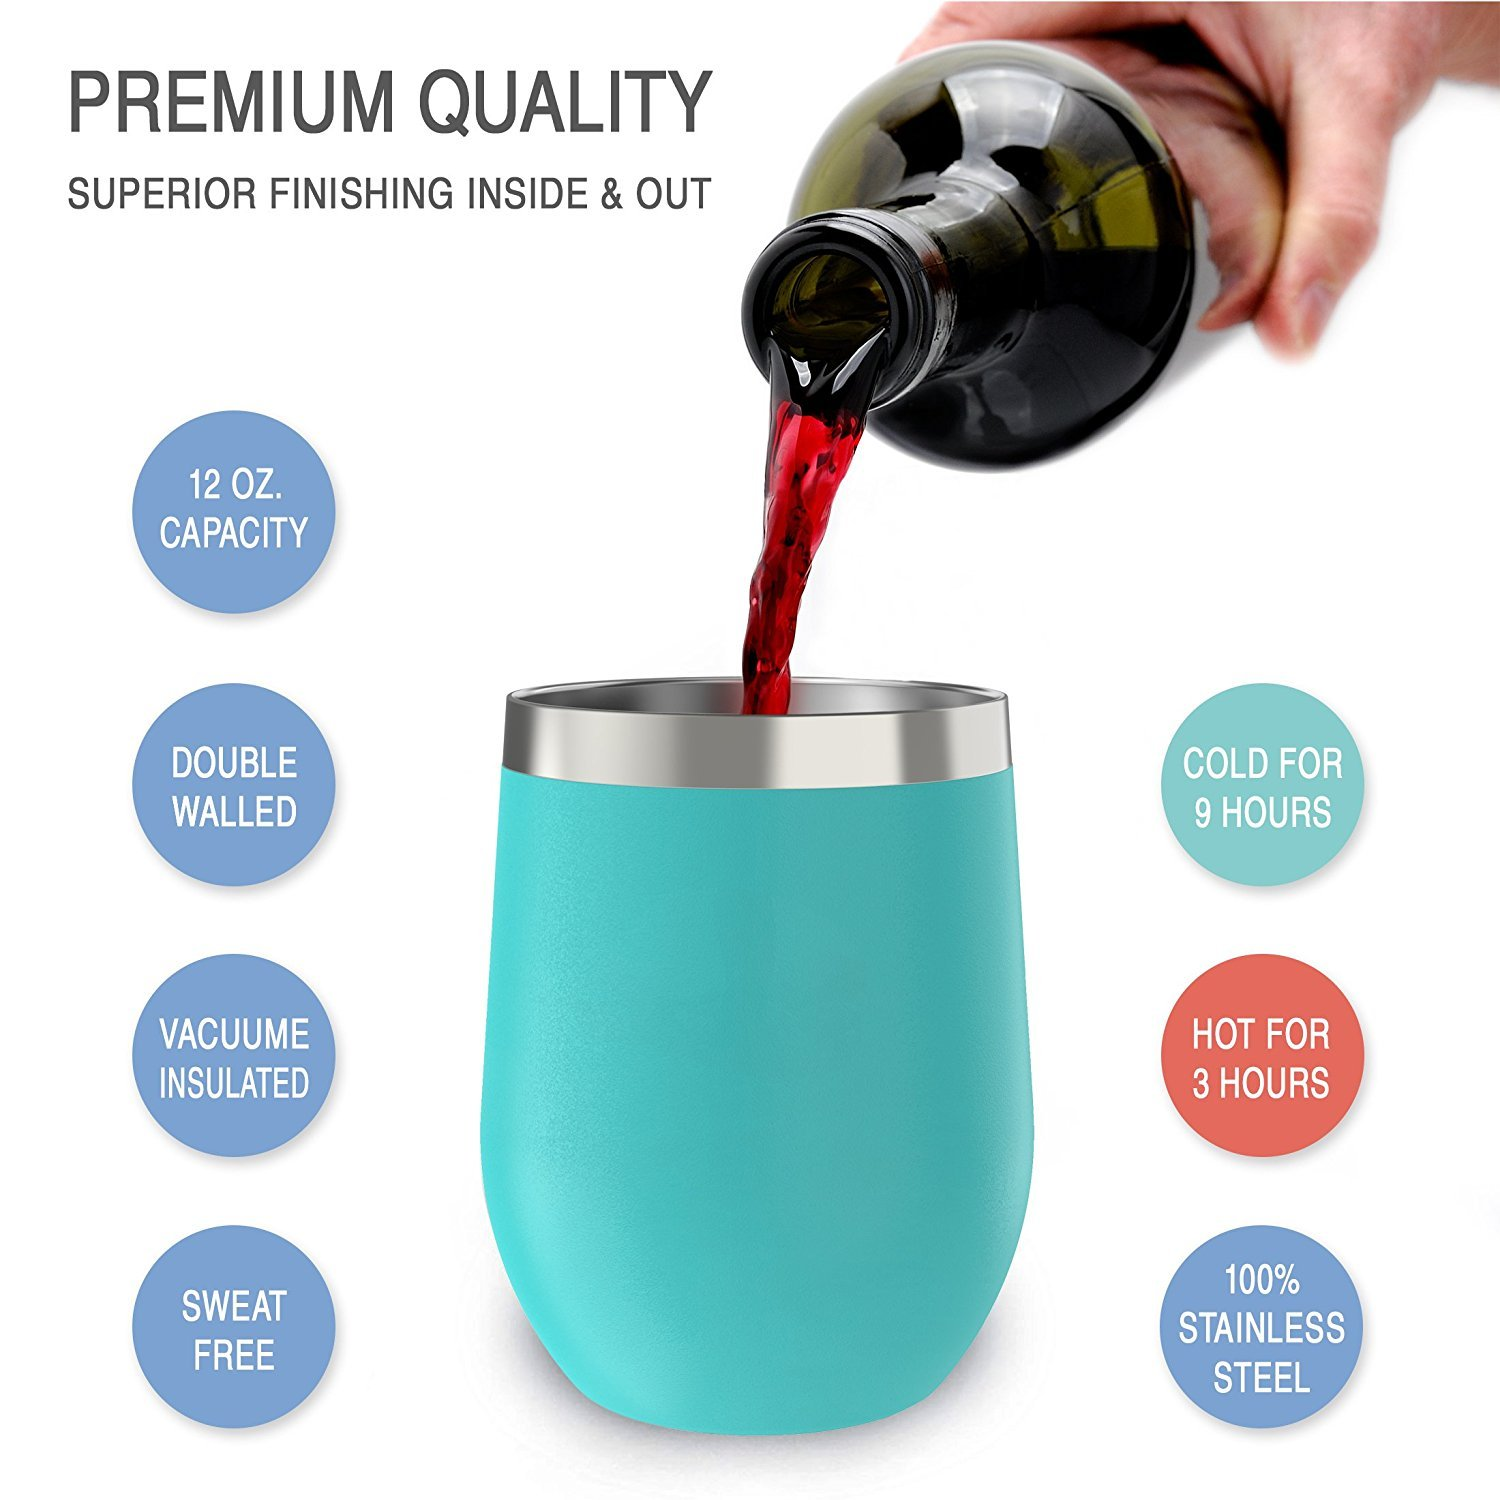 Stainless Steel Stemless Wine Glass Tumbler with Lid, 12 oz   Double Wall Vacuum Insulated Travel Tumbler Cup for Coffee, Wine, Cocktails, Ice Cream   Sweat Free, Unbreakable, BPA Free, Powder Coated by CHILLOUT LIFE (Image #3)